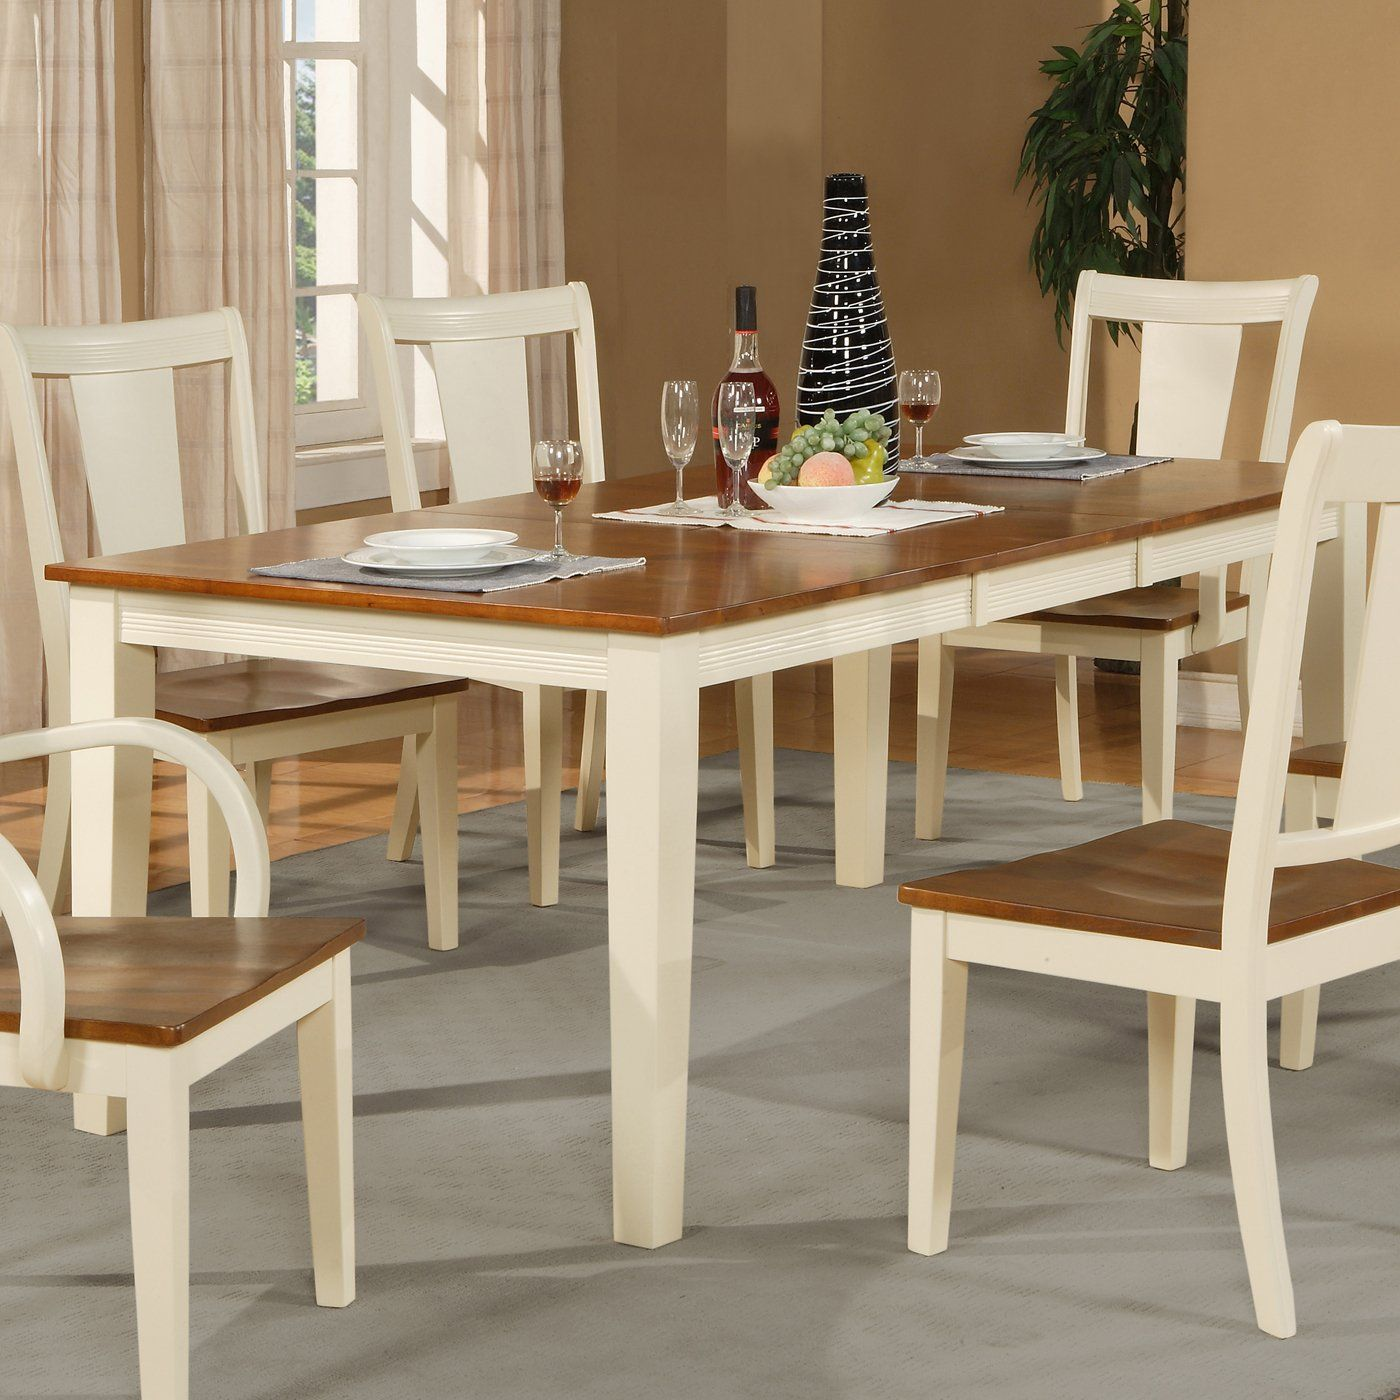 Wooden Imports CT13 T Canton Rectangular Dining Table